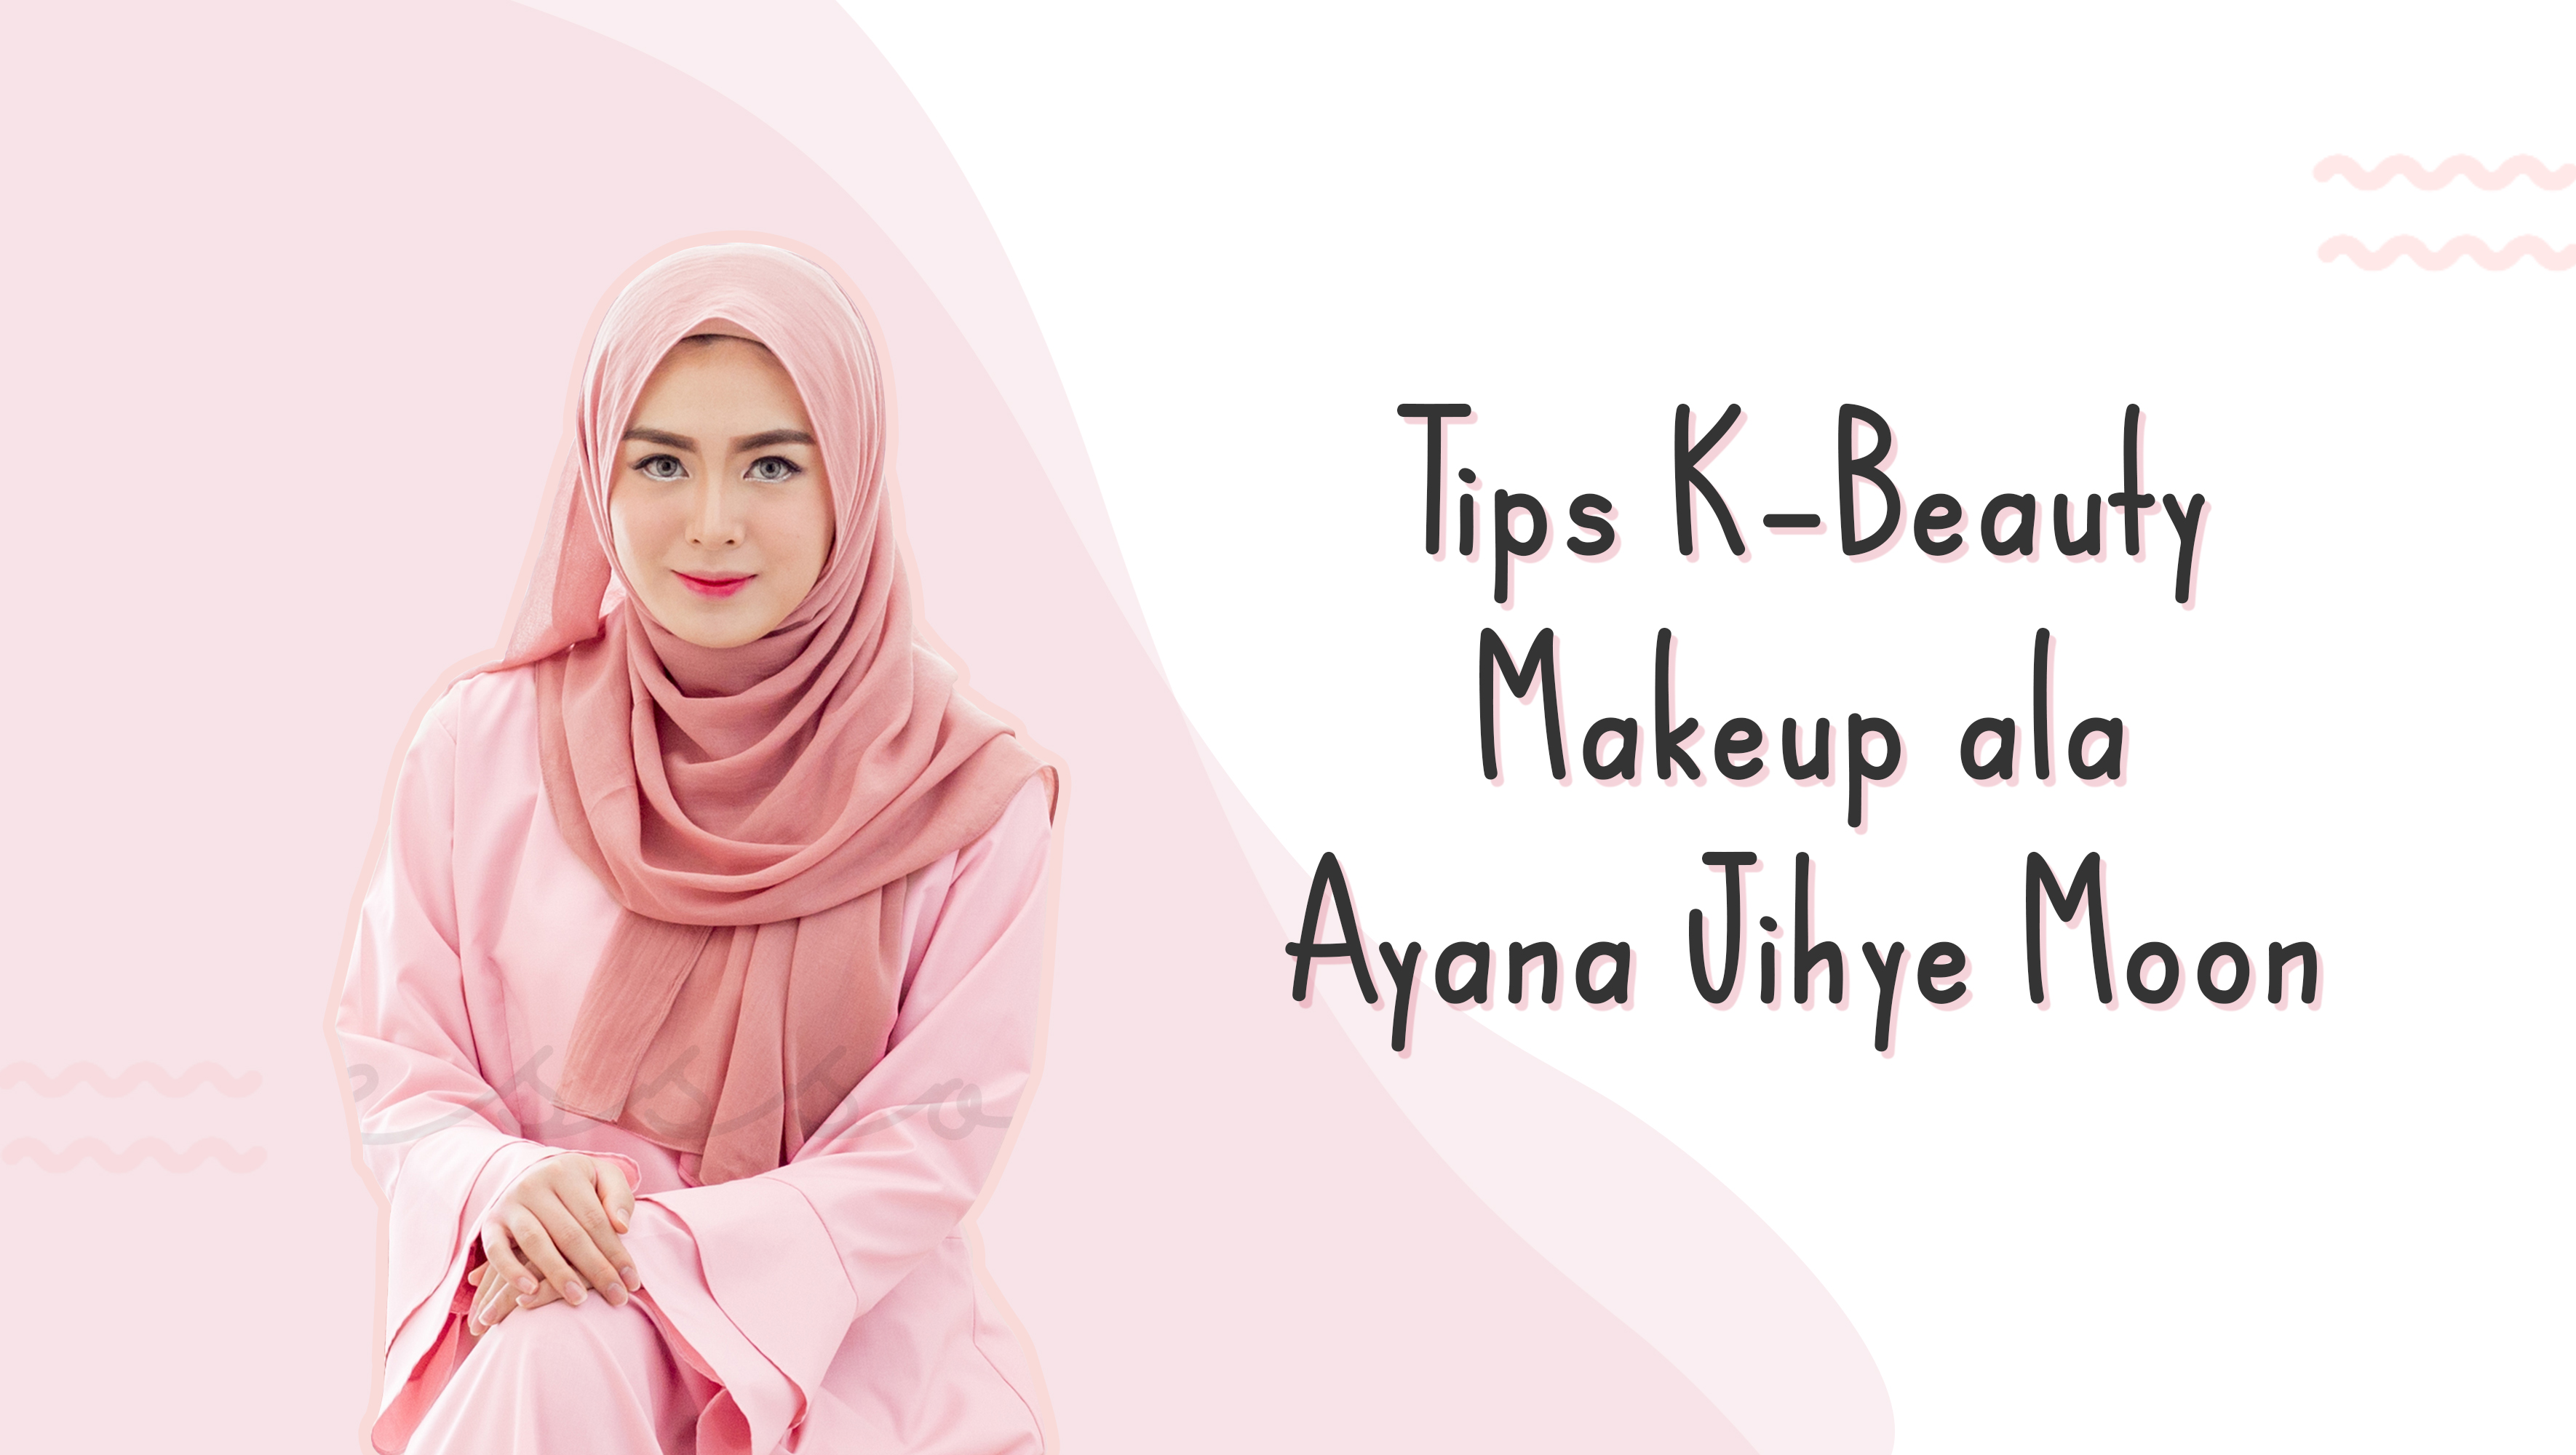 Tips K-Beauty Makeup ala Ayana Jihye Moon image